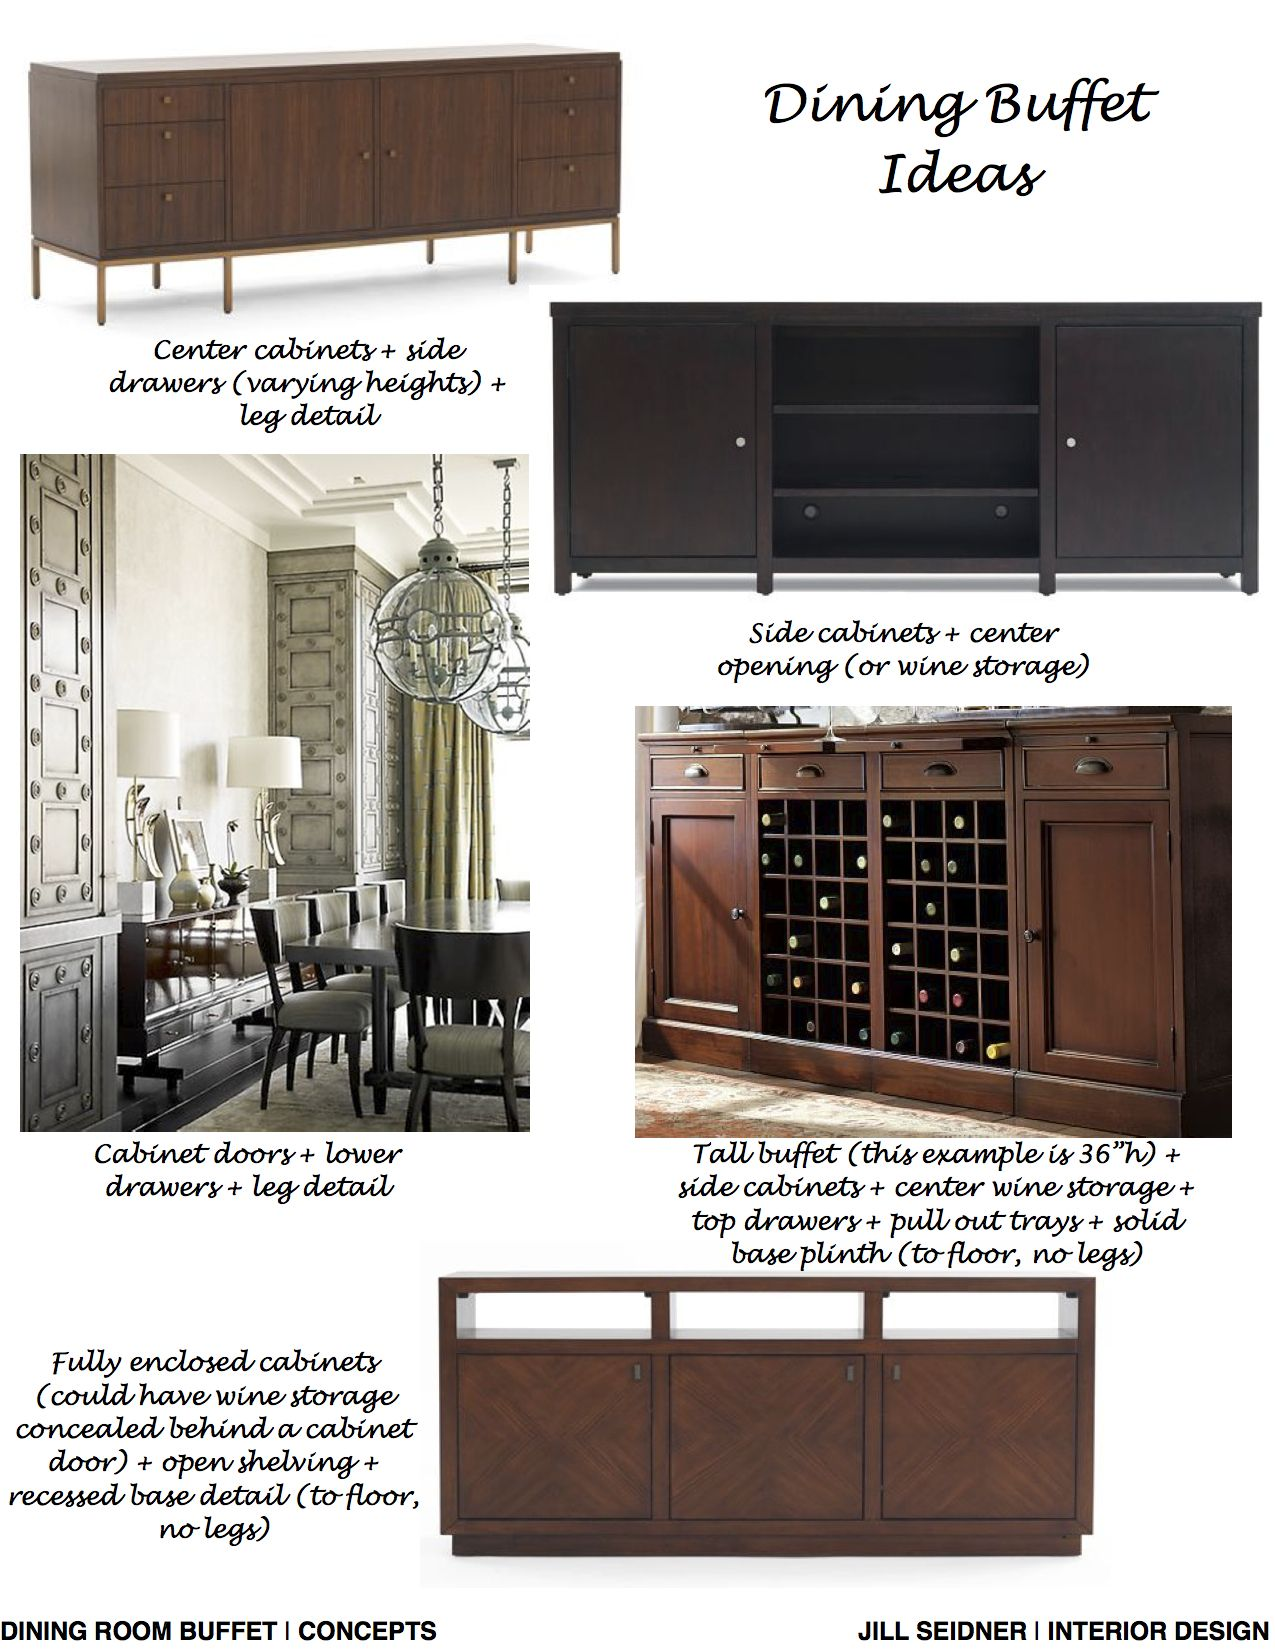 Belmont Shores CA Residence Custom Dining Room Buffet Ideas Concept Board JSInteriorDes